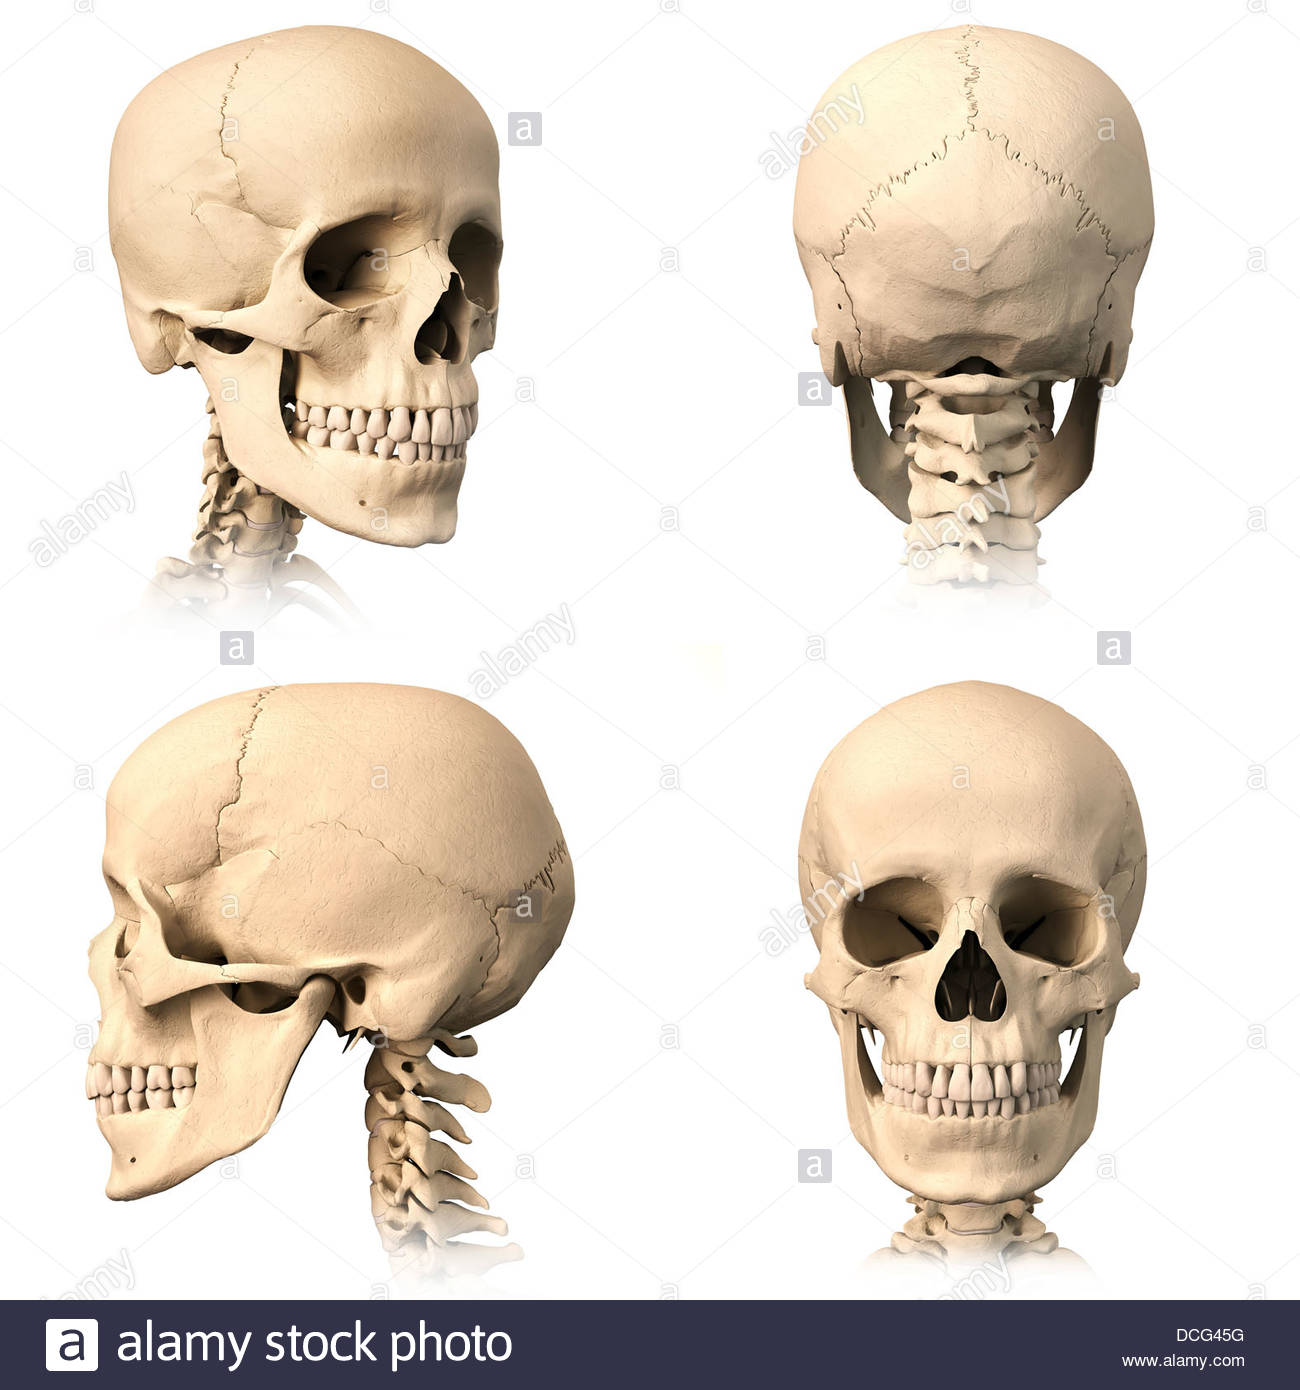 Occipital Bone Cut Out Stock Images & Pictures - Alamy